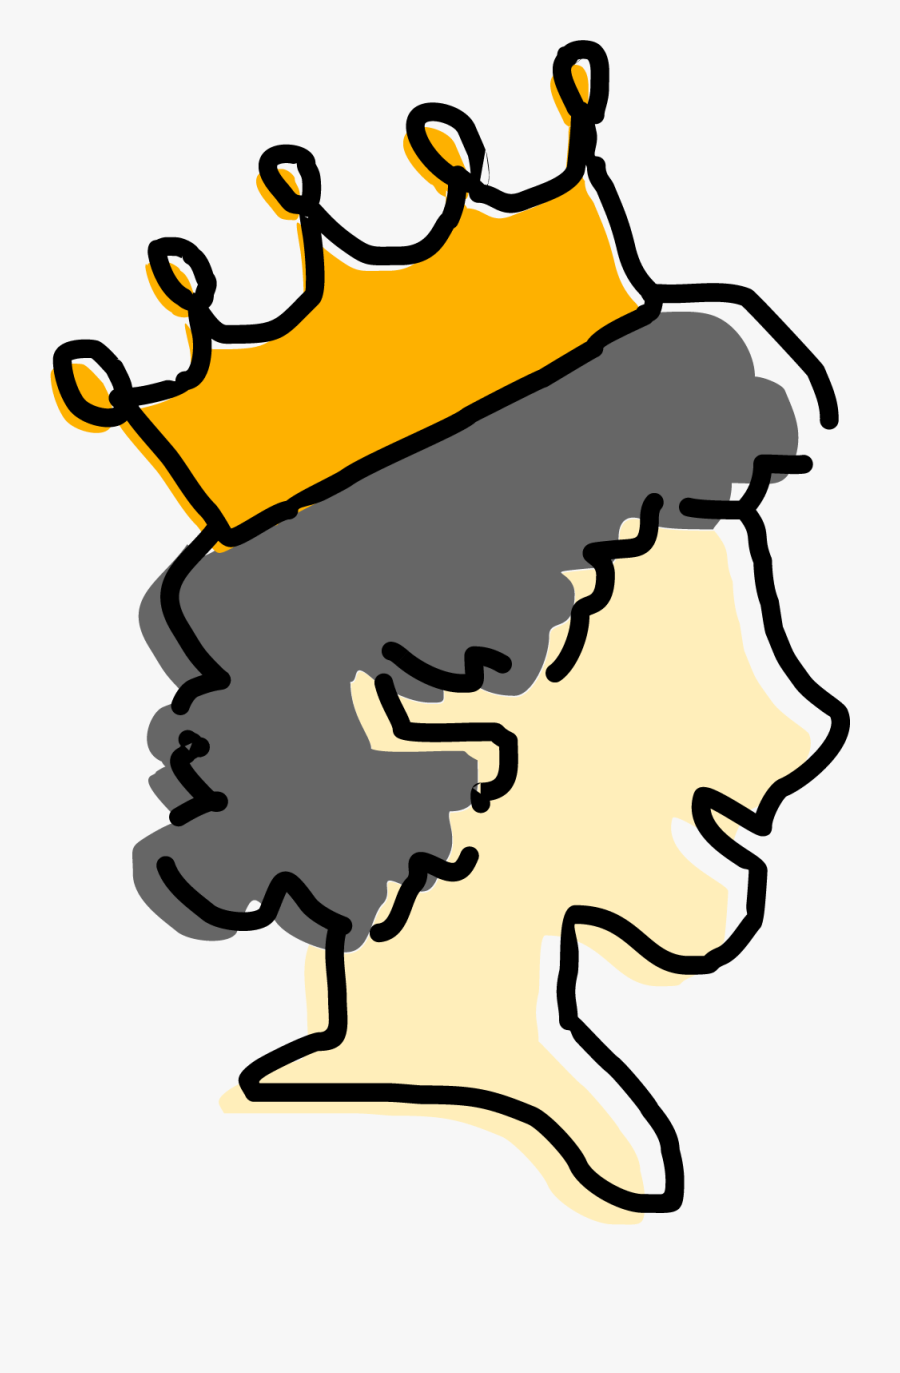 King Clipart England King , Free Transparent Clipart.